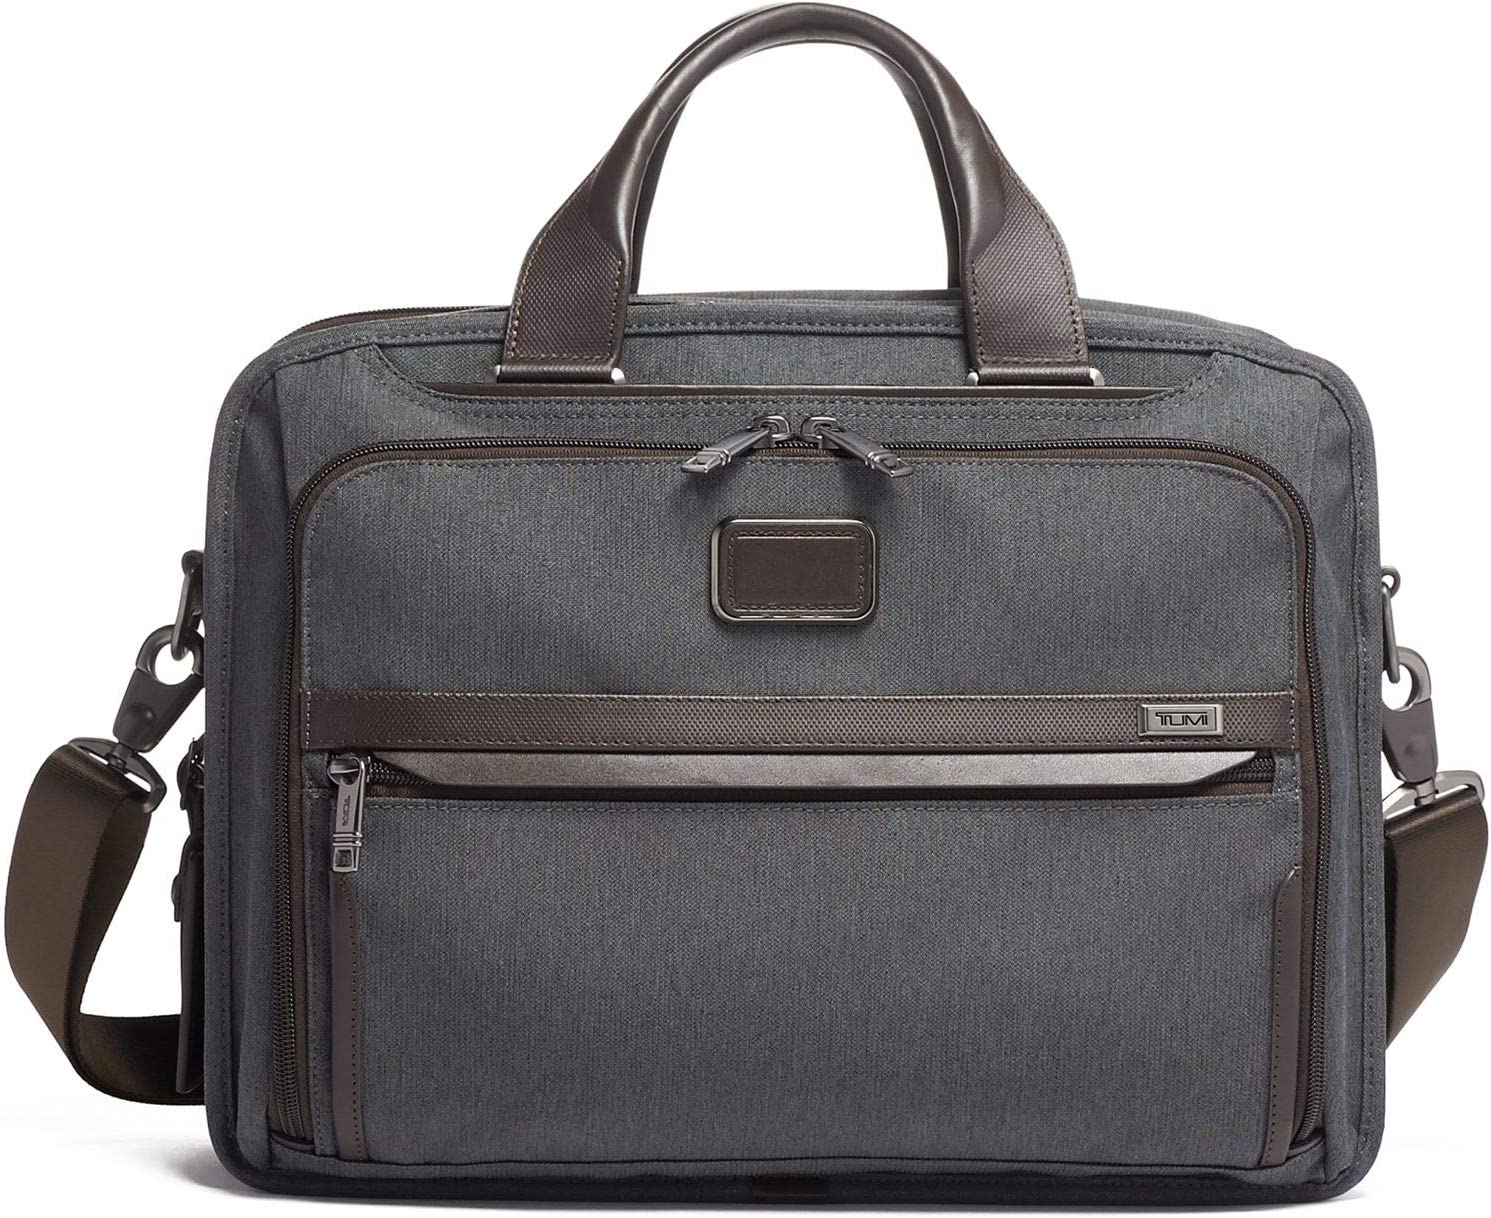 TUMI - Alpha 3 Organizer Laptop Briefcase - 15 Inch Computer Bag for Men and Women - Anthracite